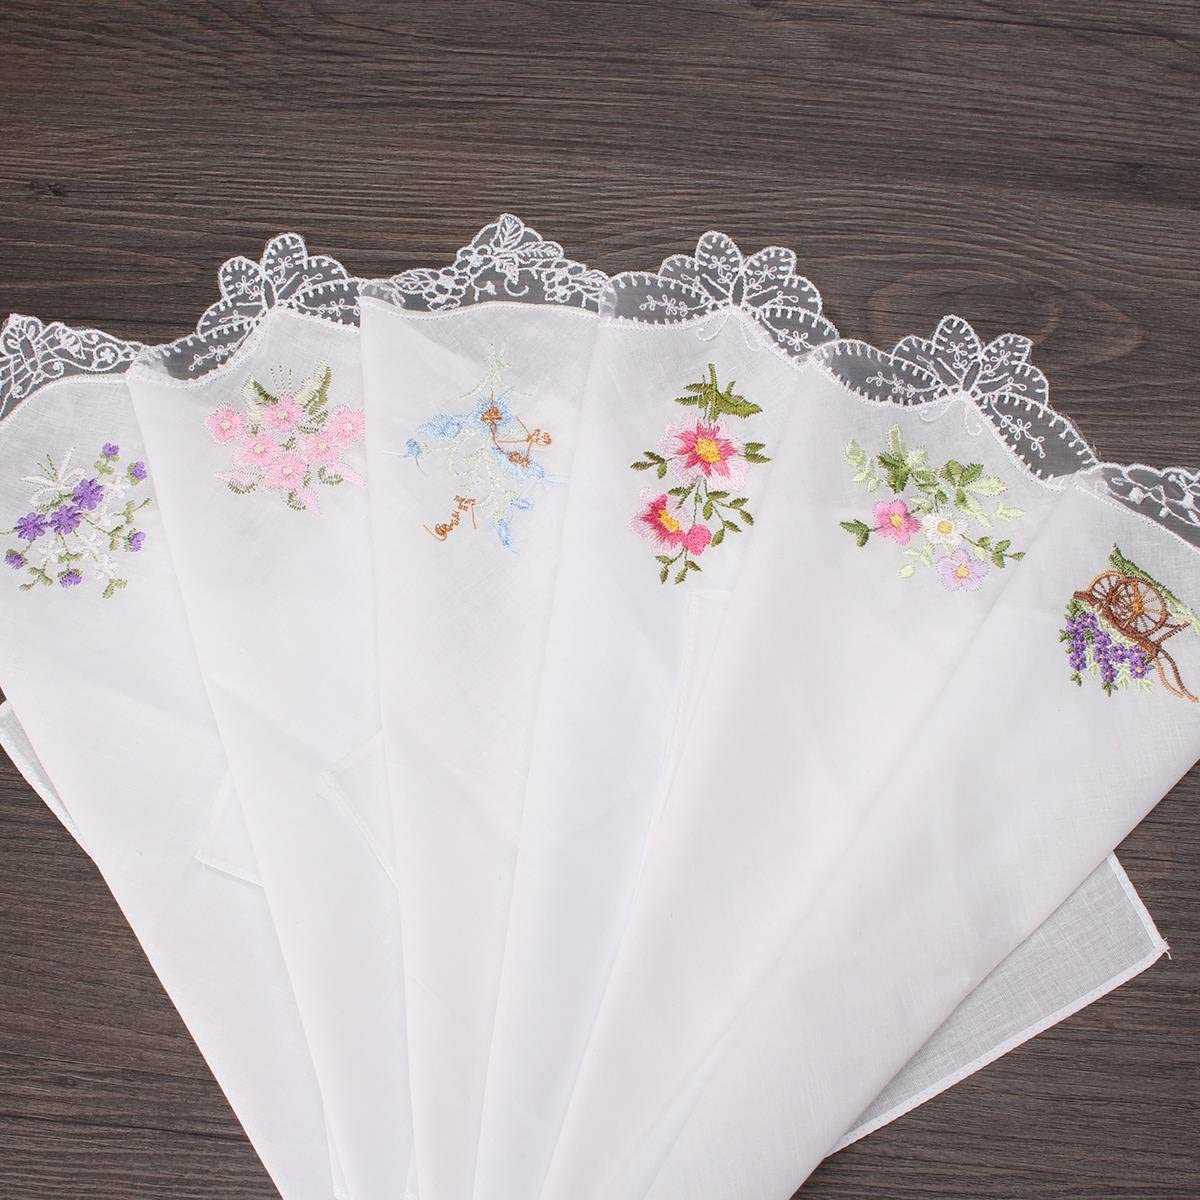 TanQiang Embroidered Butterfly Lace Flower Hankies 6PCS Vintage Cotton Women Napkin Floral Assorted Cloth Portable Ladies Handkerchief